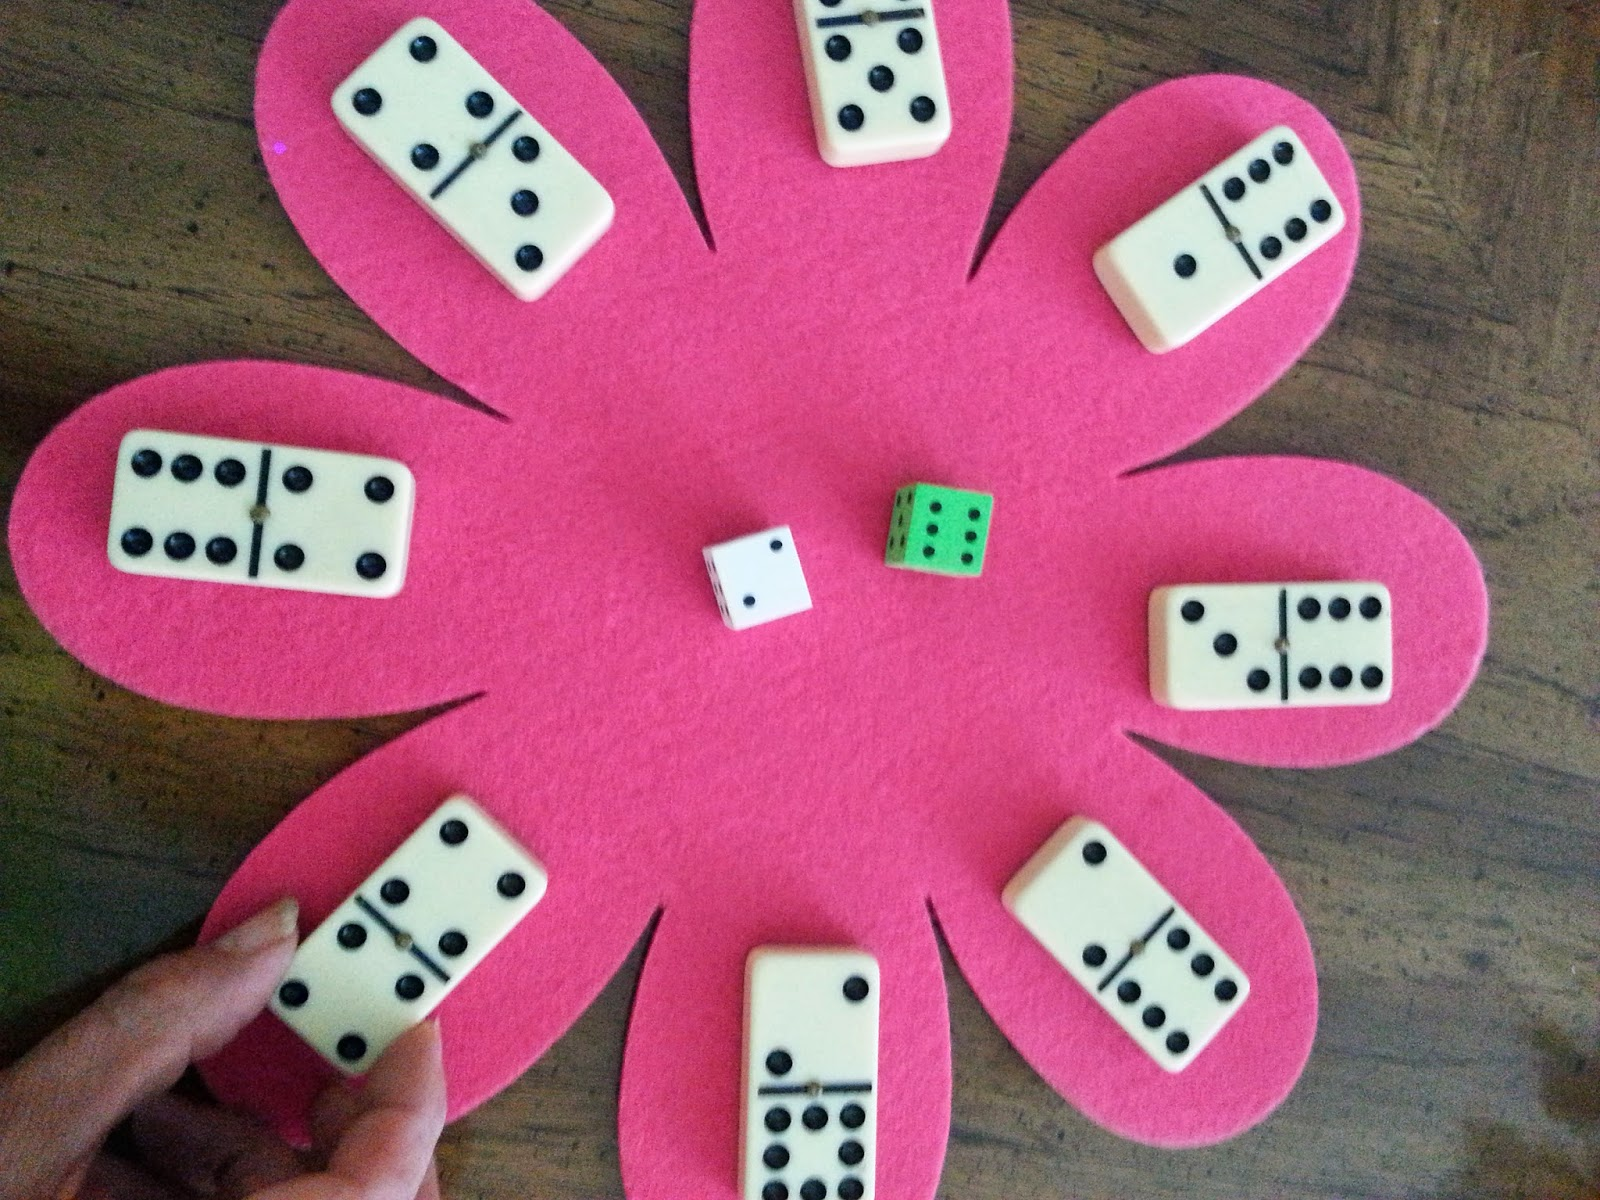 Primary Inspiration Spring Math Games With Dice And Dominos